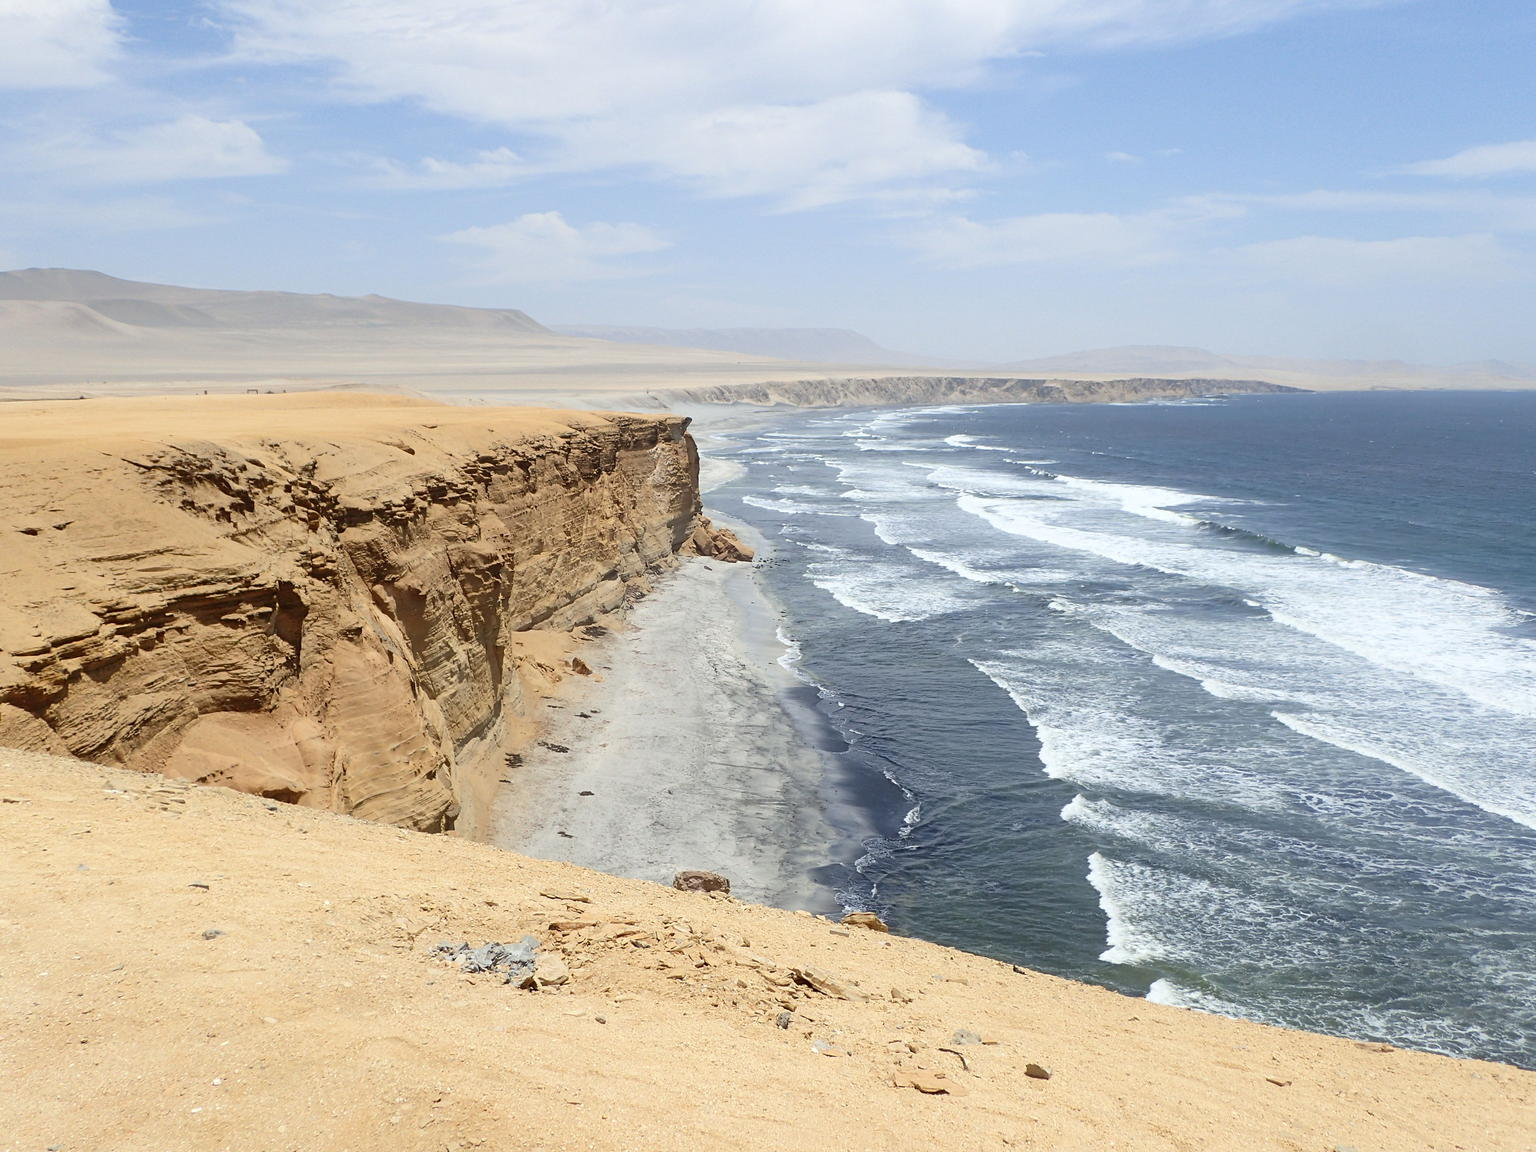 Ballestas Islands and Paracas National Reserve Day Trip from Paracas